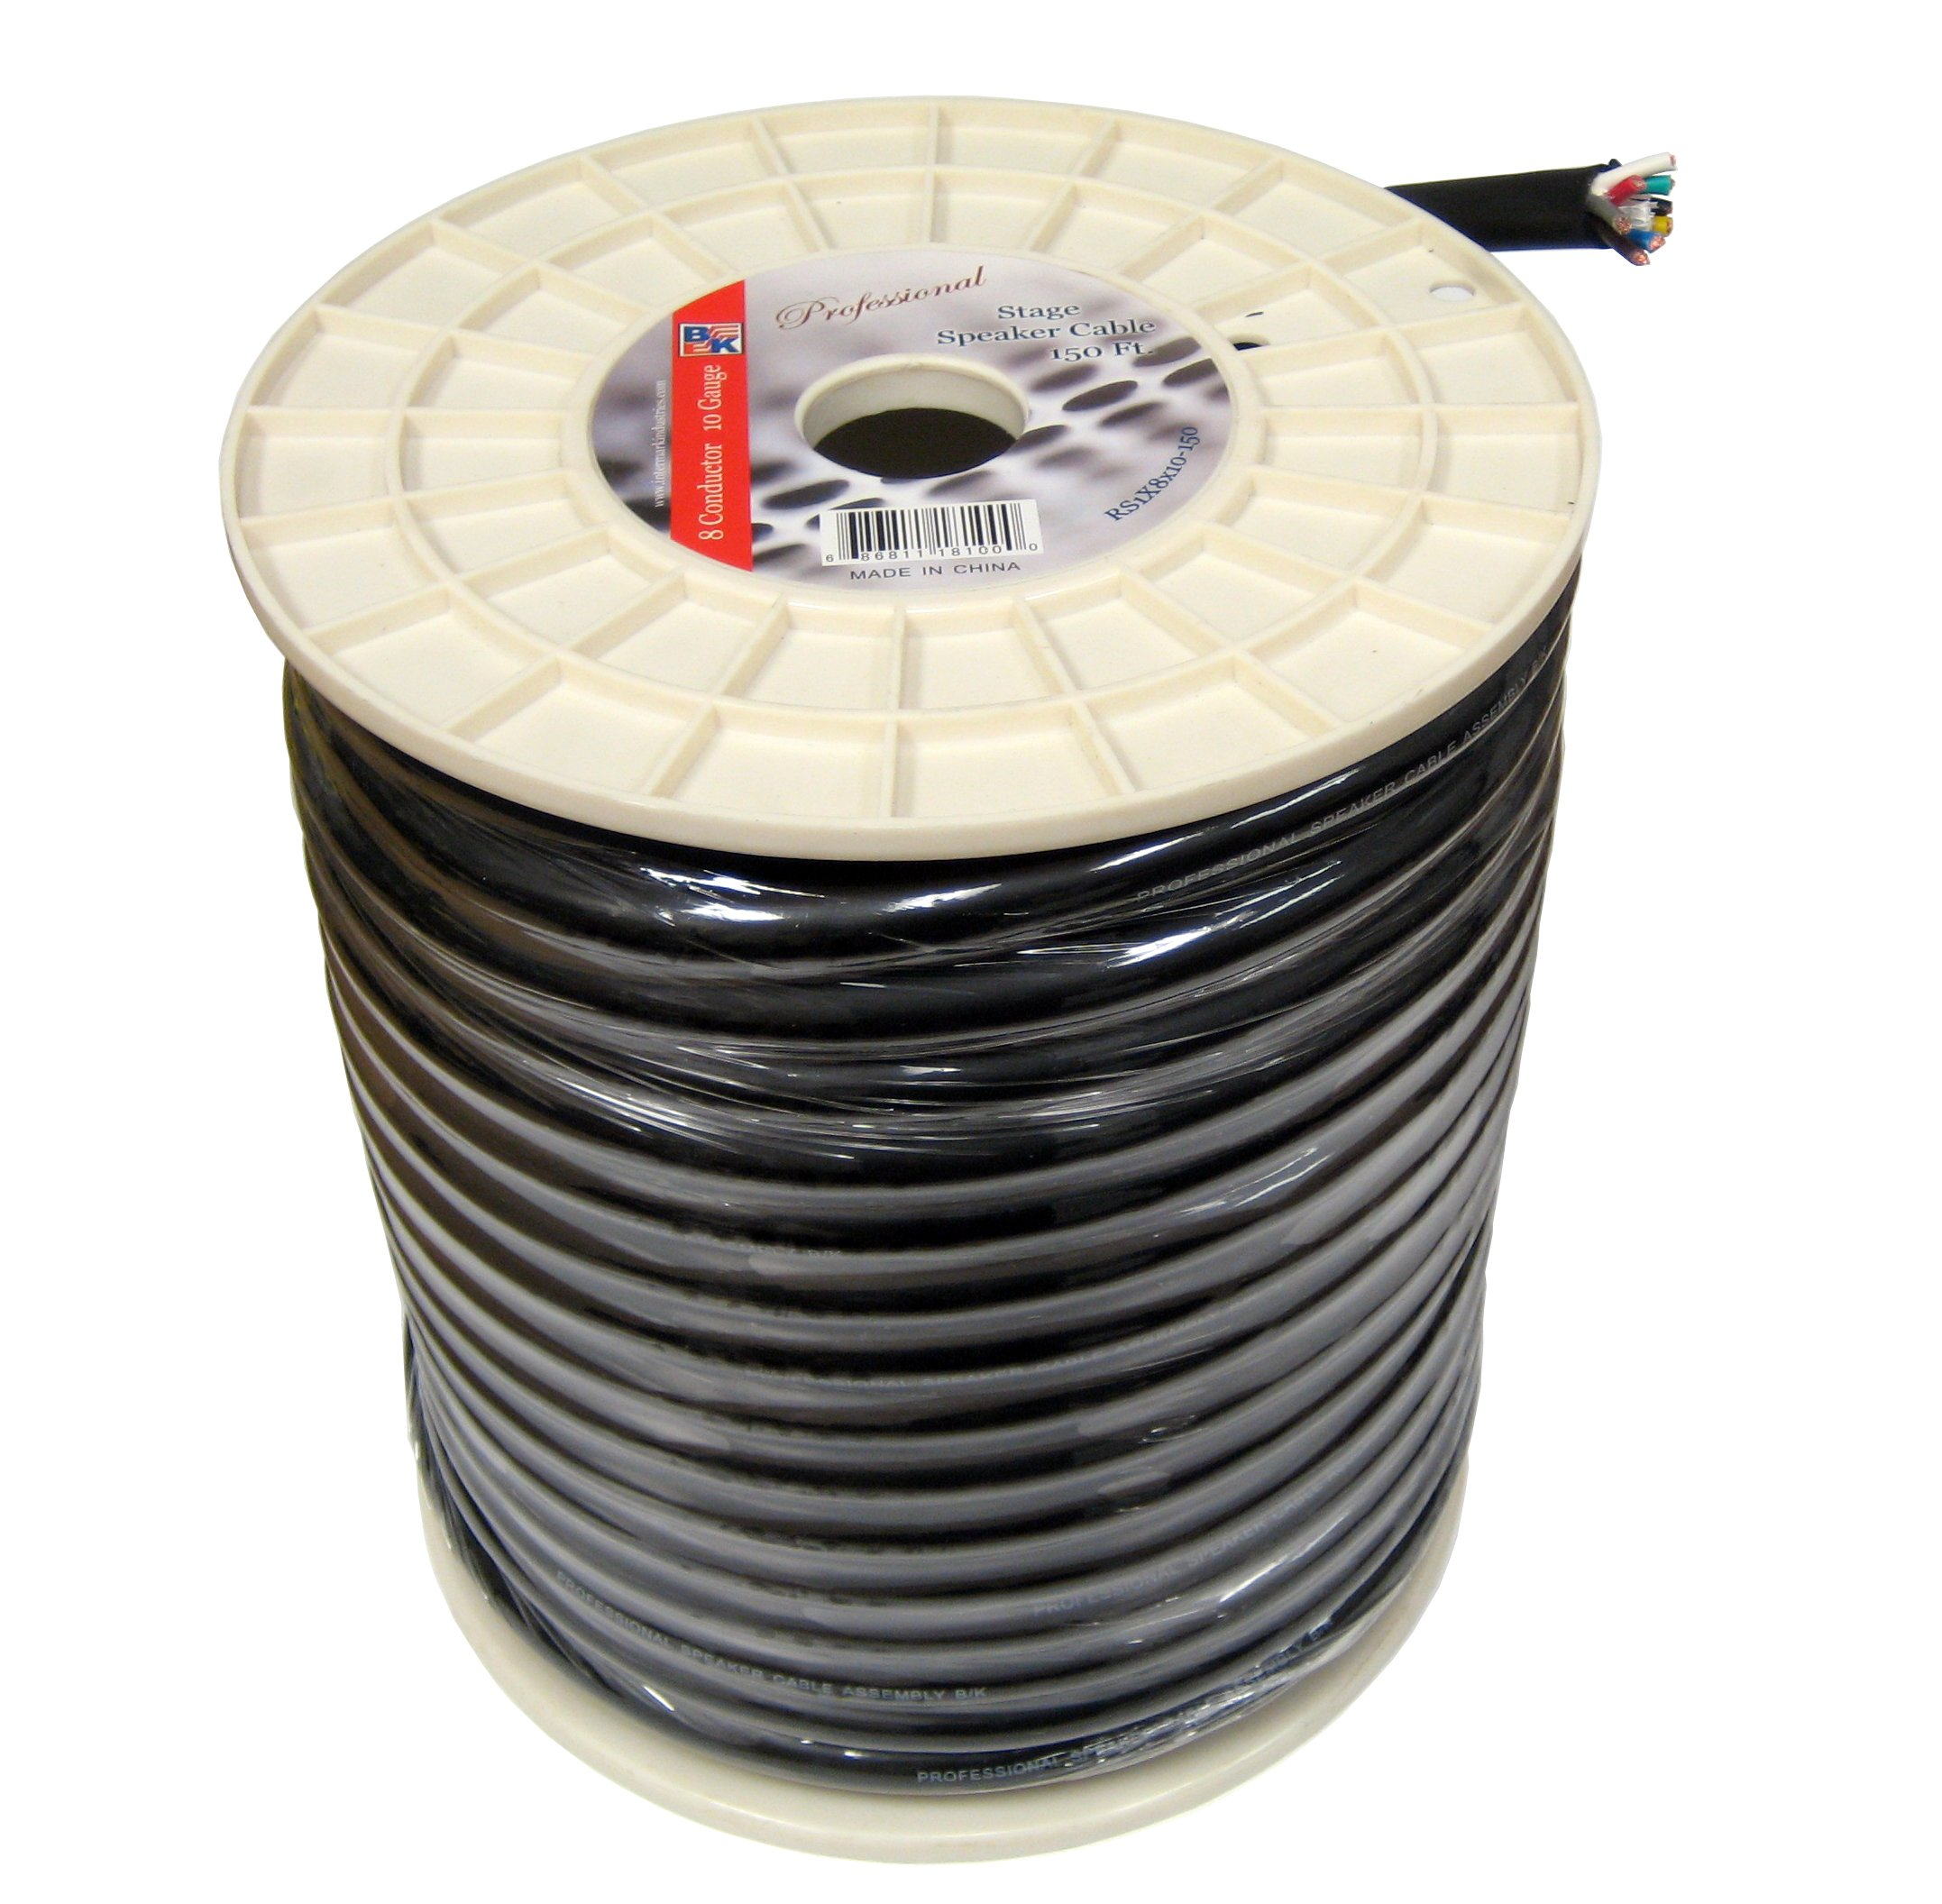 Blast King IRS1X8X10 150-Feet 10 AWG 8 Conductors Stage Speaker Cables